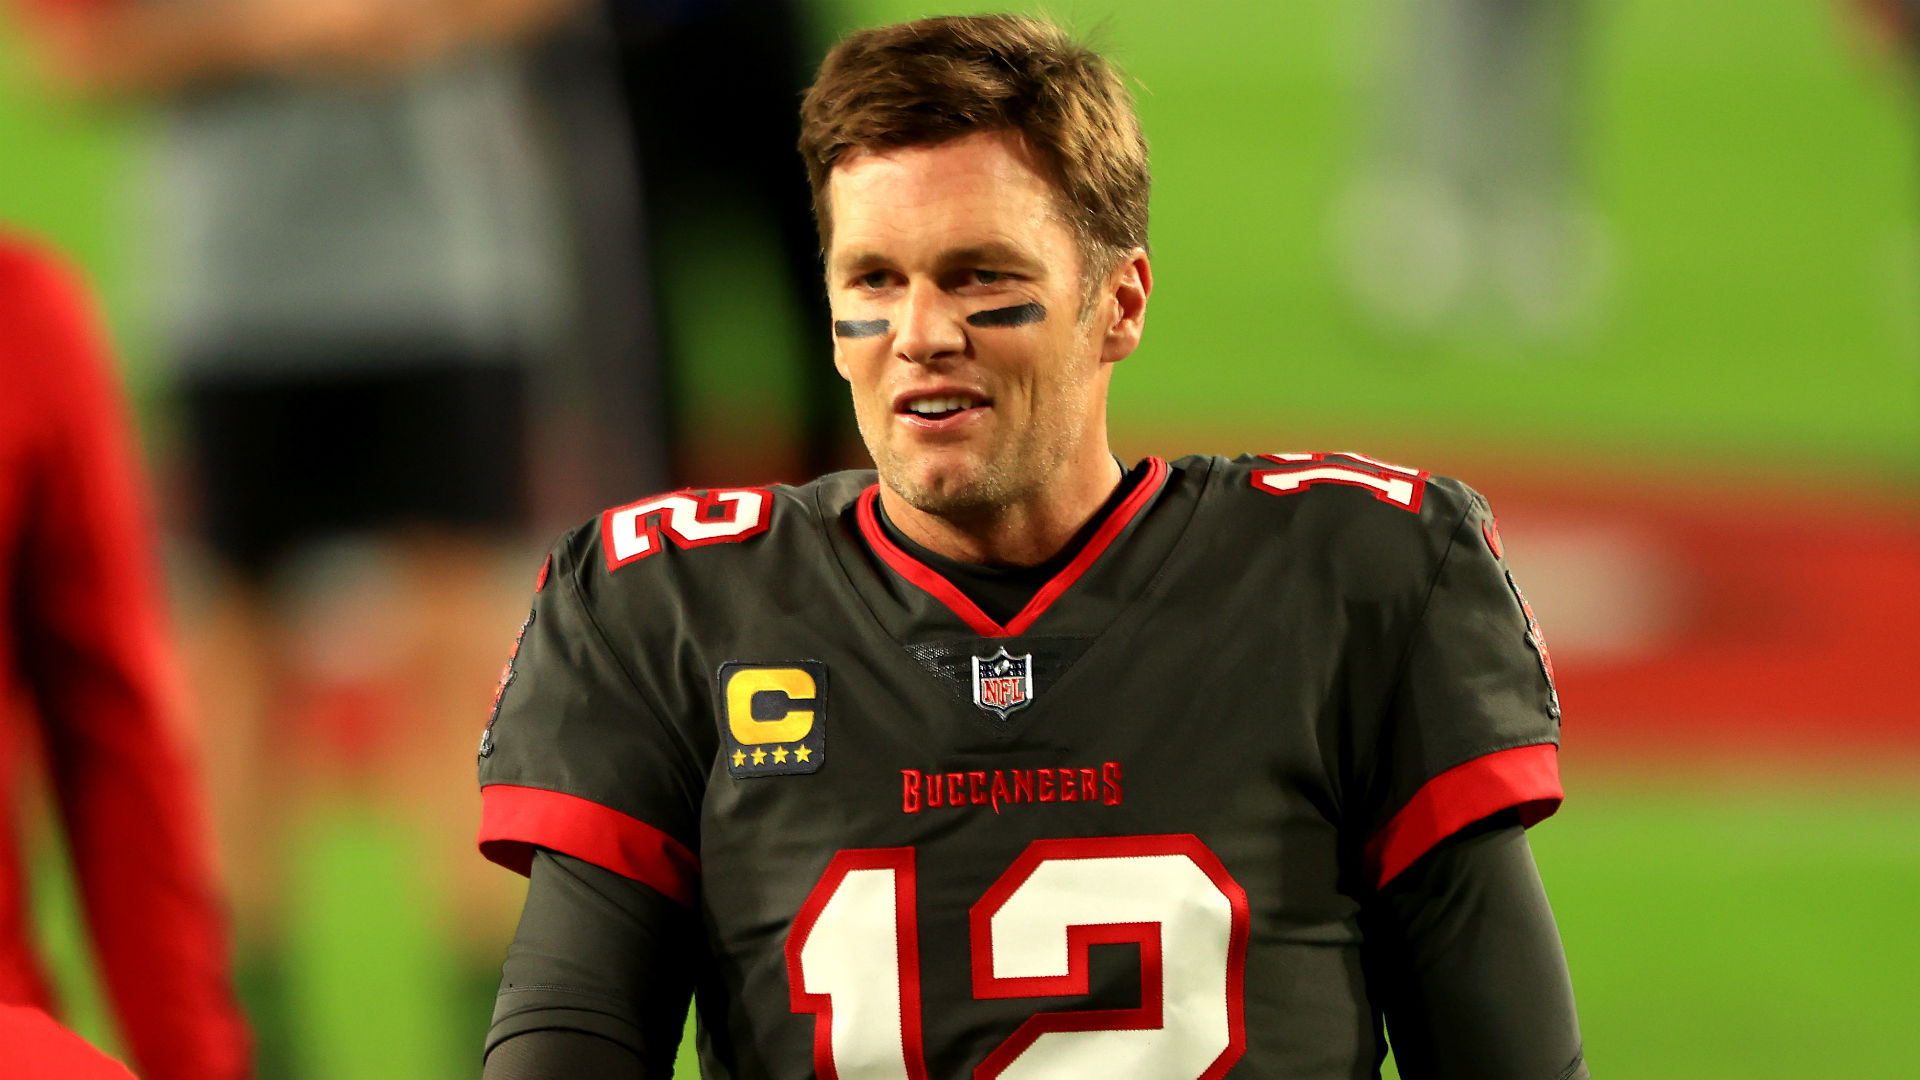 Tom Brady Handshake Tracker An Investigation Into The Bucs Qb S Postgame Handshakes And Snubs Sporting News